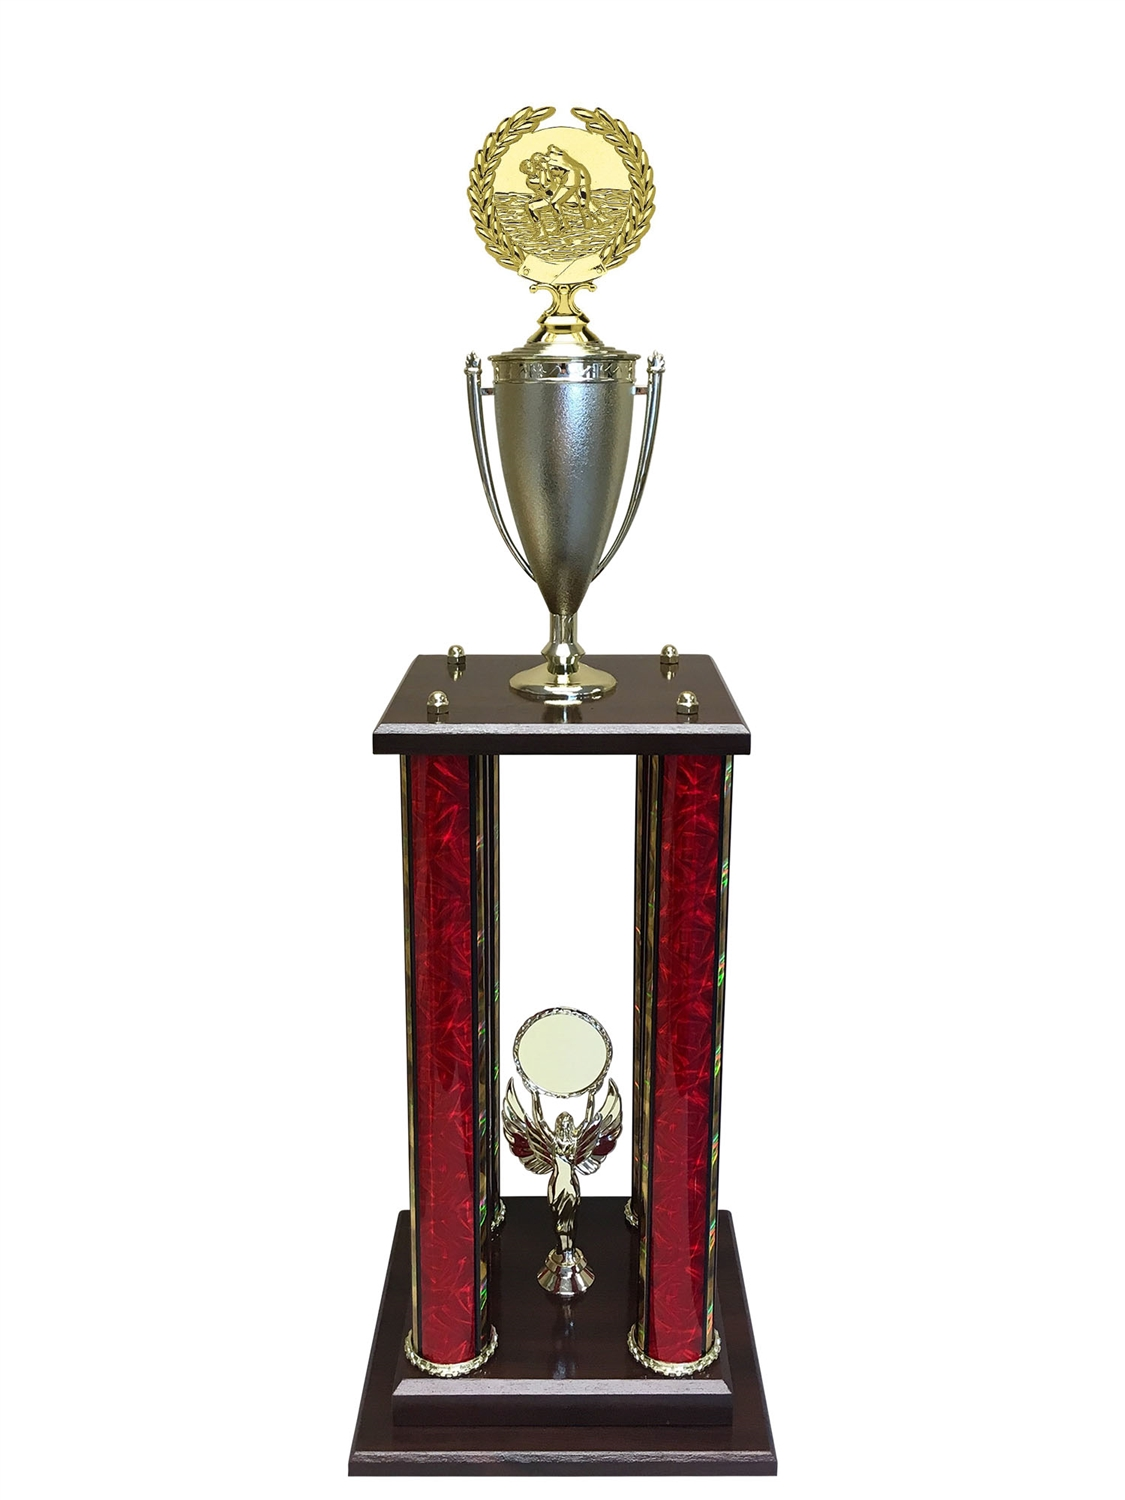 4 Post Wrestling Trophy in 11 colors & 3 sizes